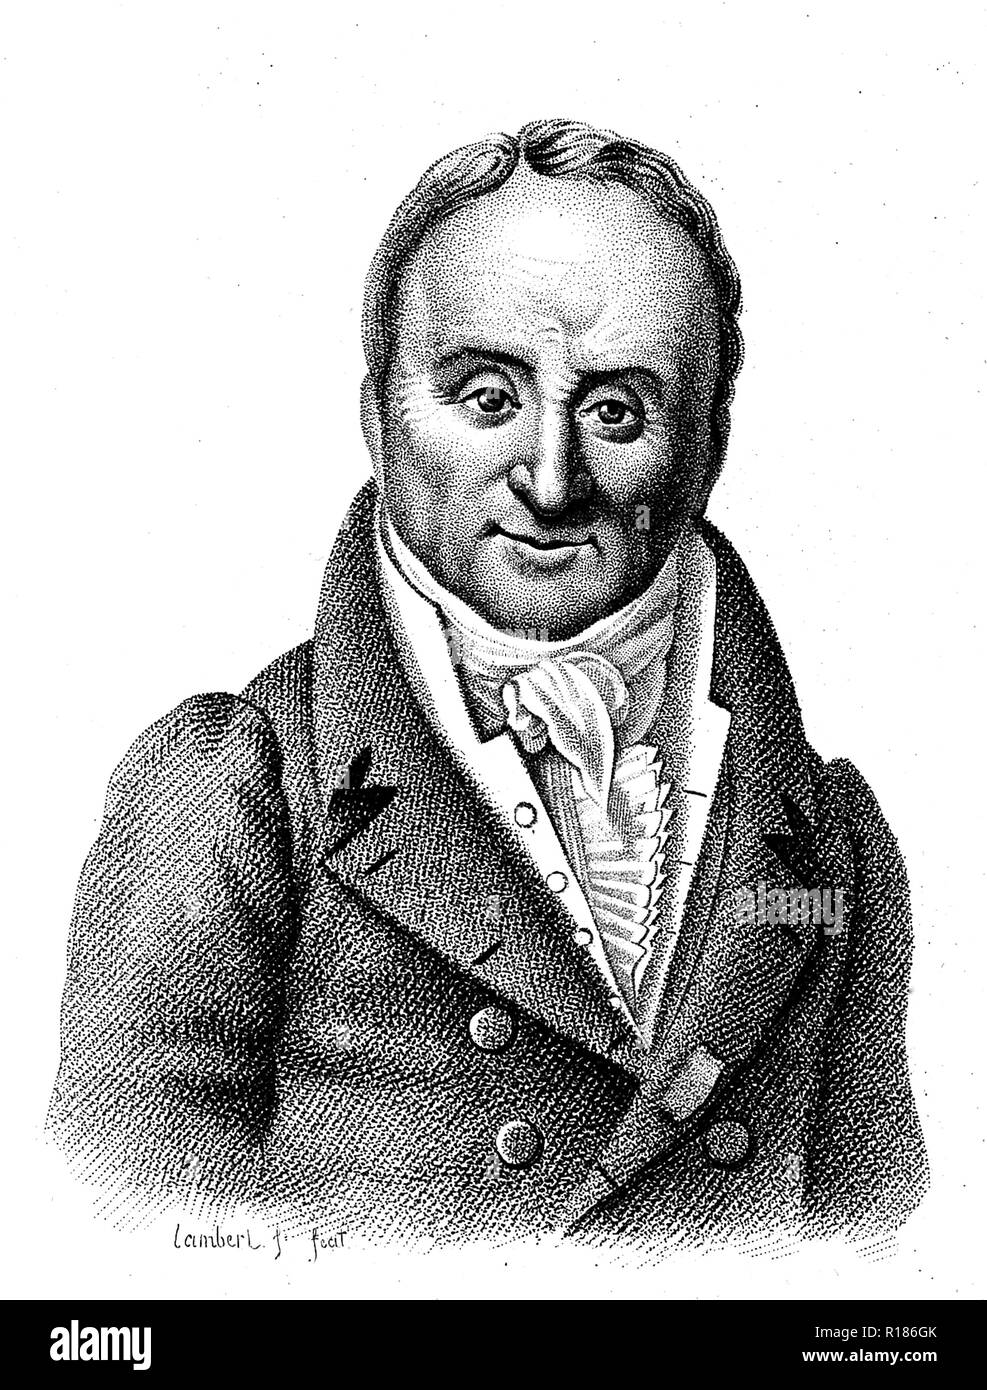 PHILLIPE PINEL (1745-1826) French physician - Stock Image